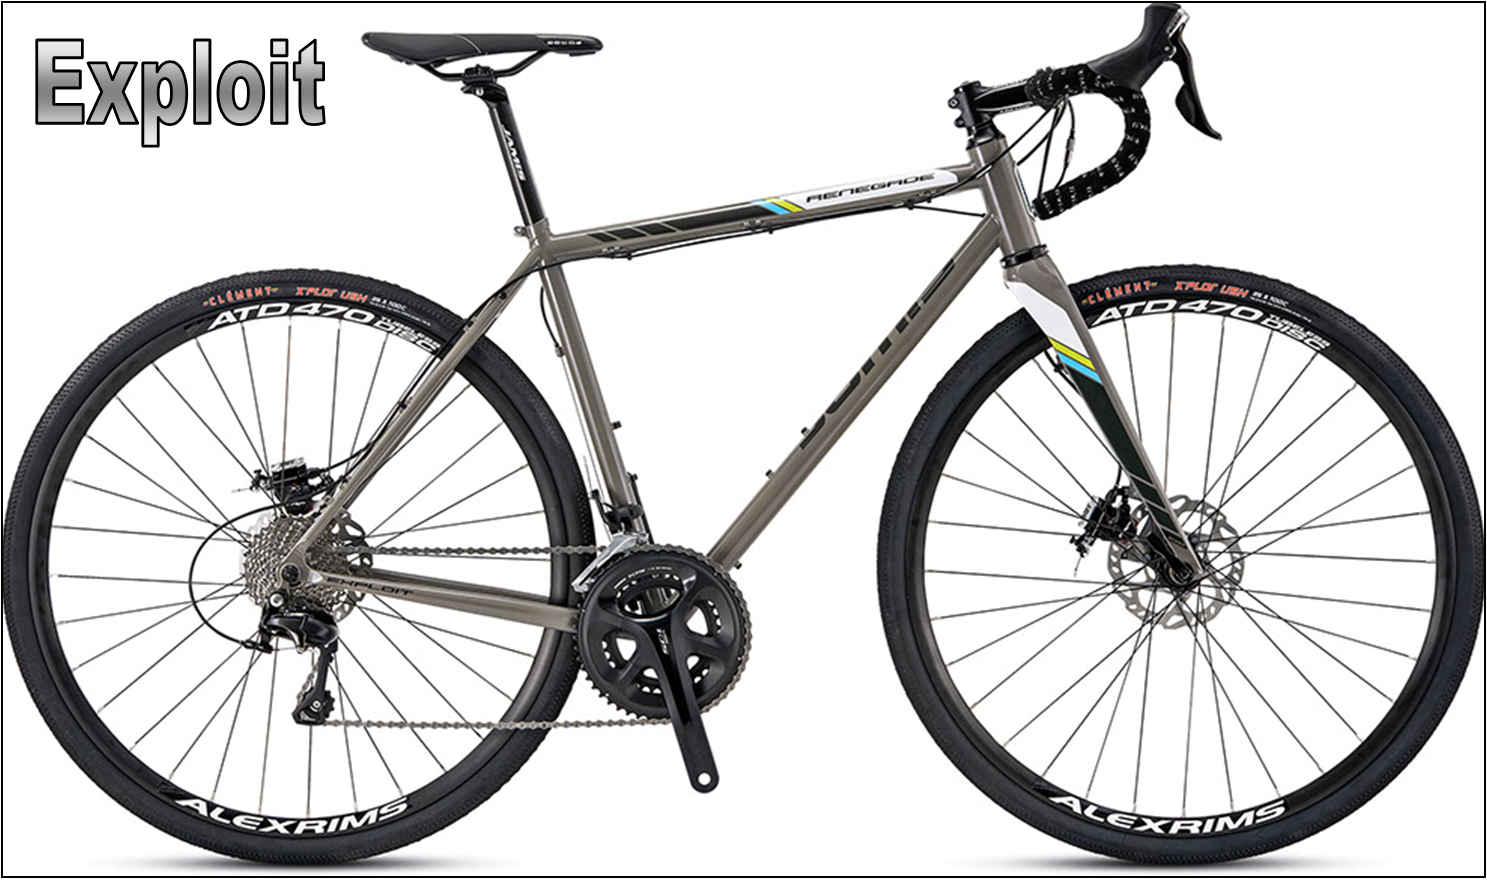 jamis bikes renegade exploit adventure road bike